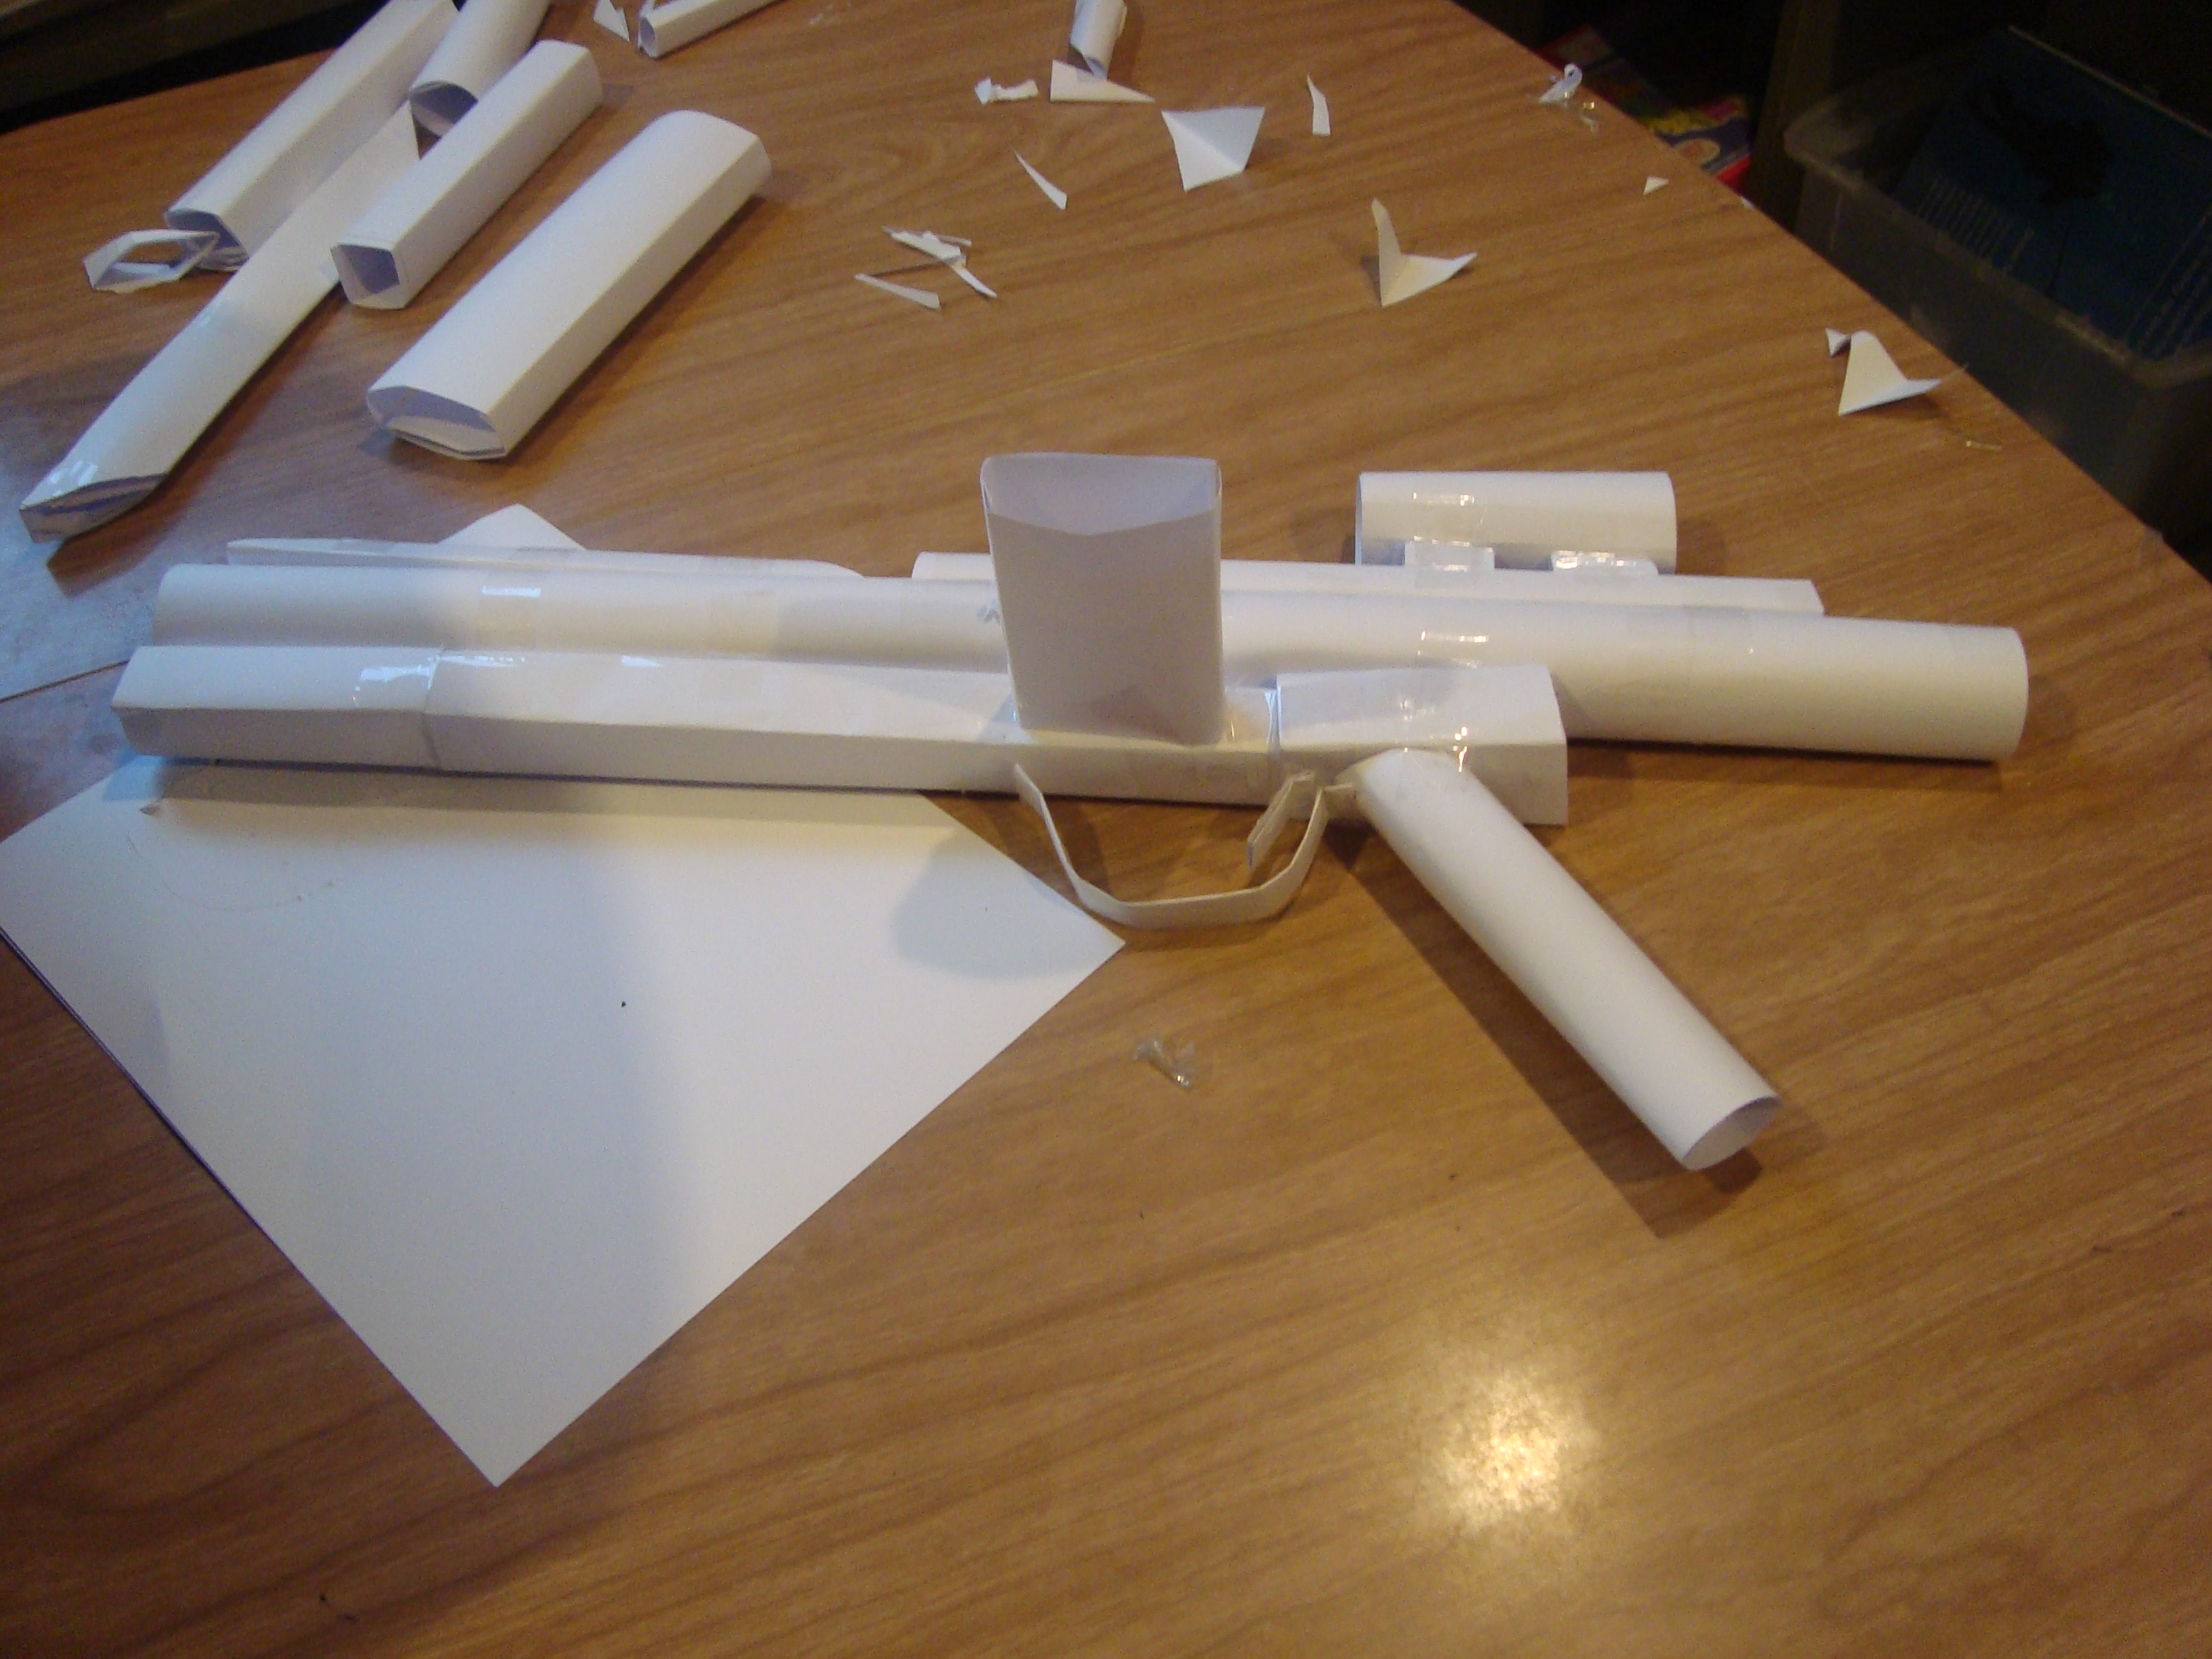 Star wars gun made of paper